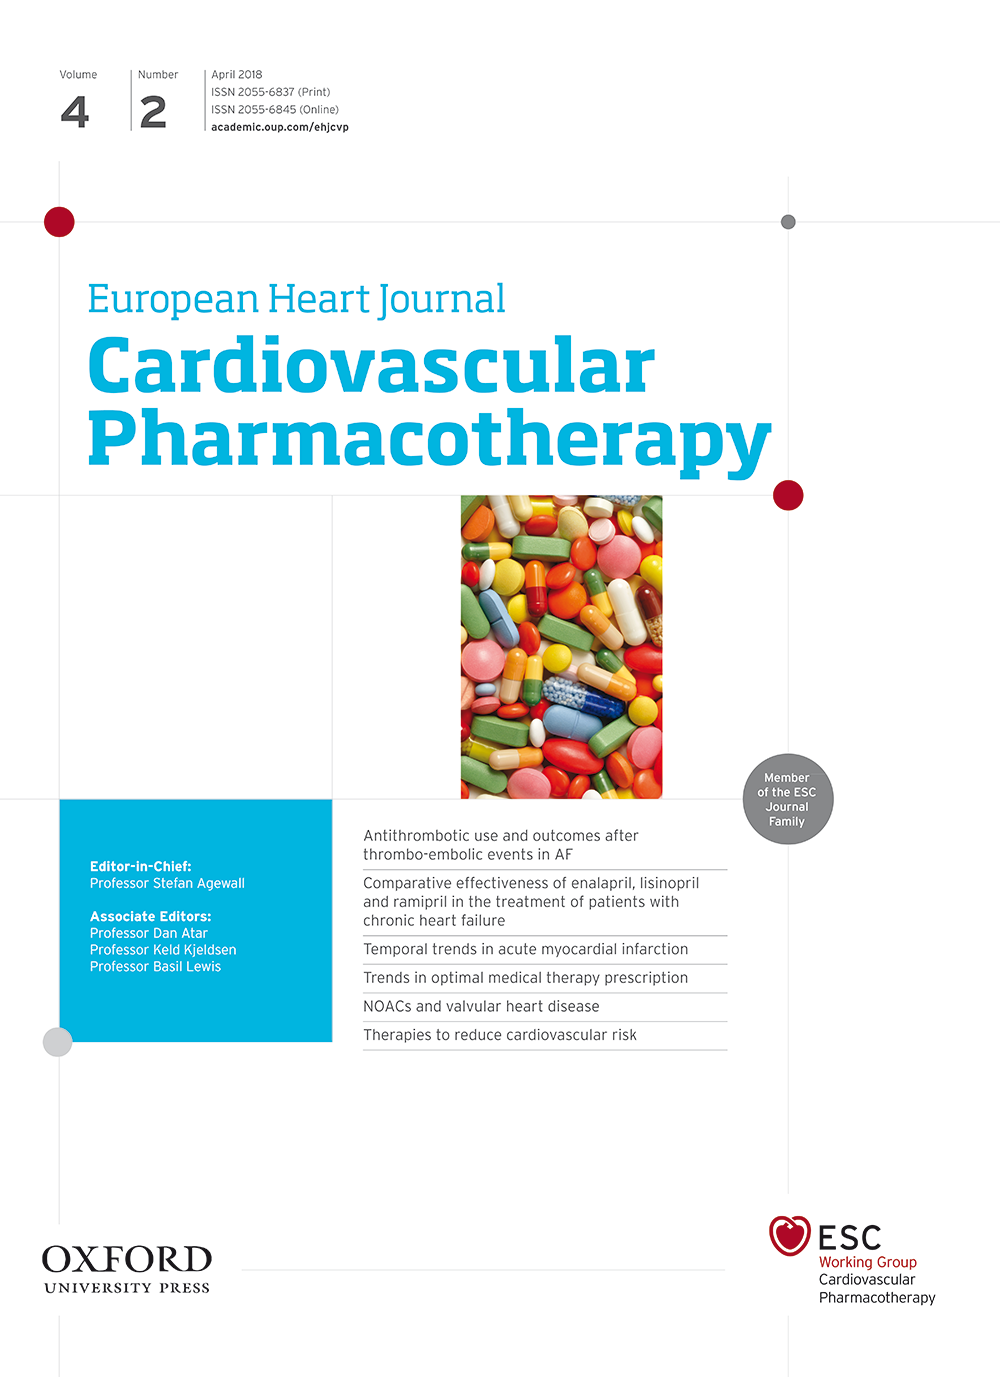 Journal-Cardiovascular-Pharmacotherapy.png